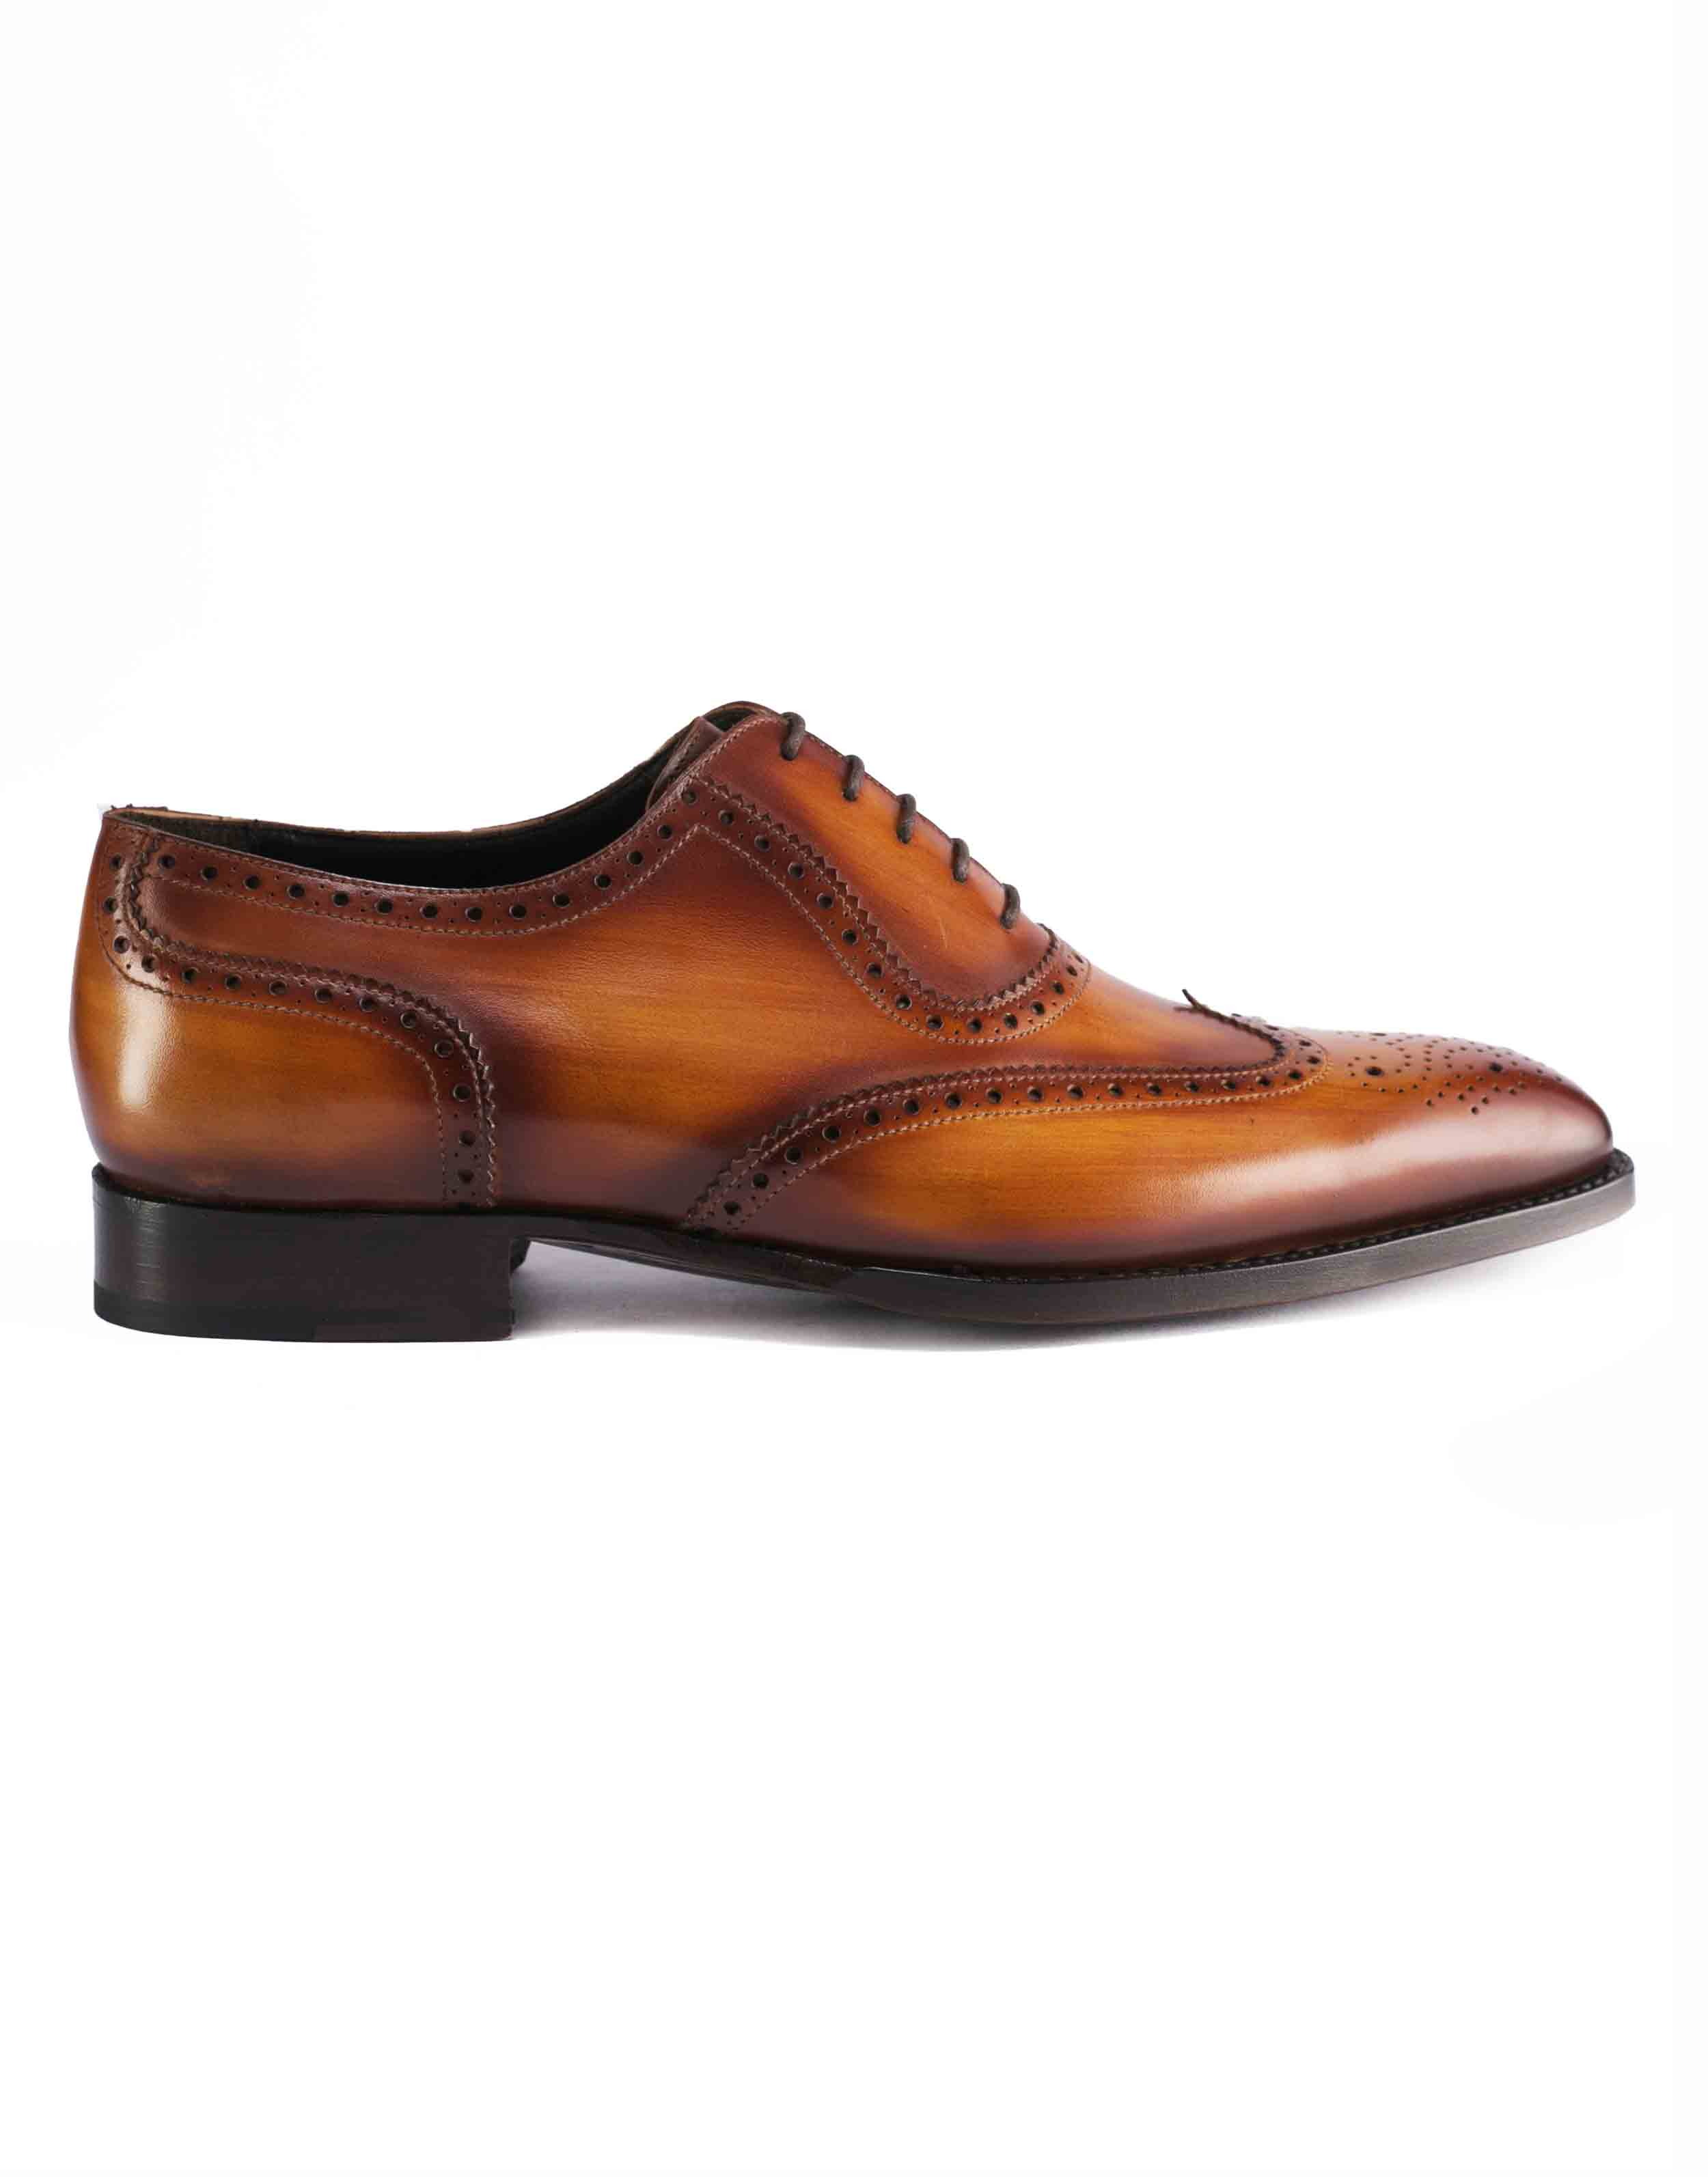 BROWN WINGTIP BROGUE OXFORD1